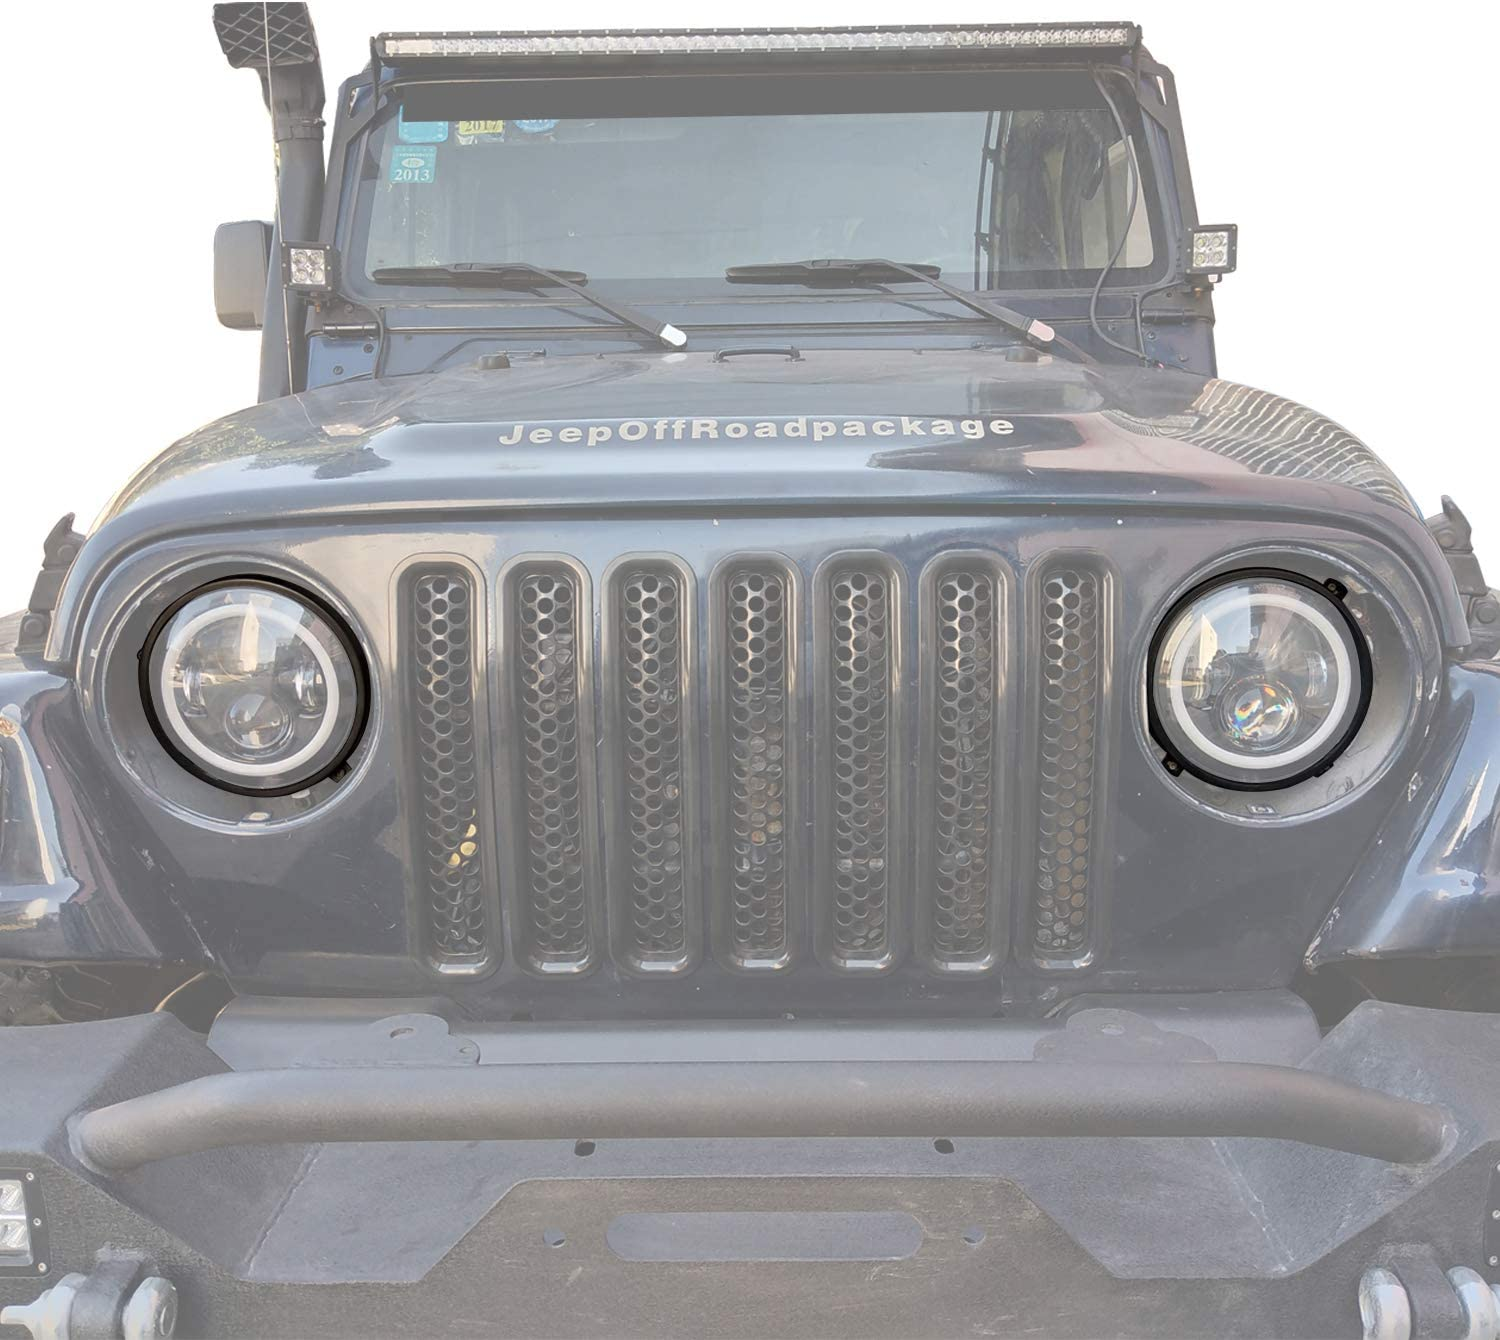 Kutang Modified Jeep Wrangler 7 inch Round Headlight Mounting Bracket Rings in Black for 1997-2006 Jeep Wrangler TJ